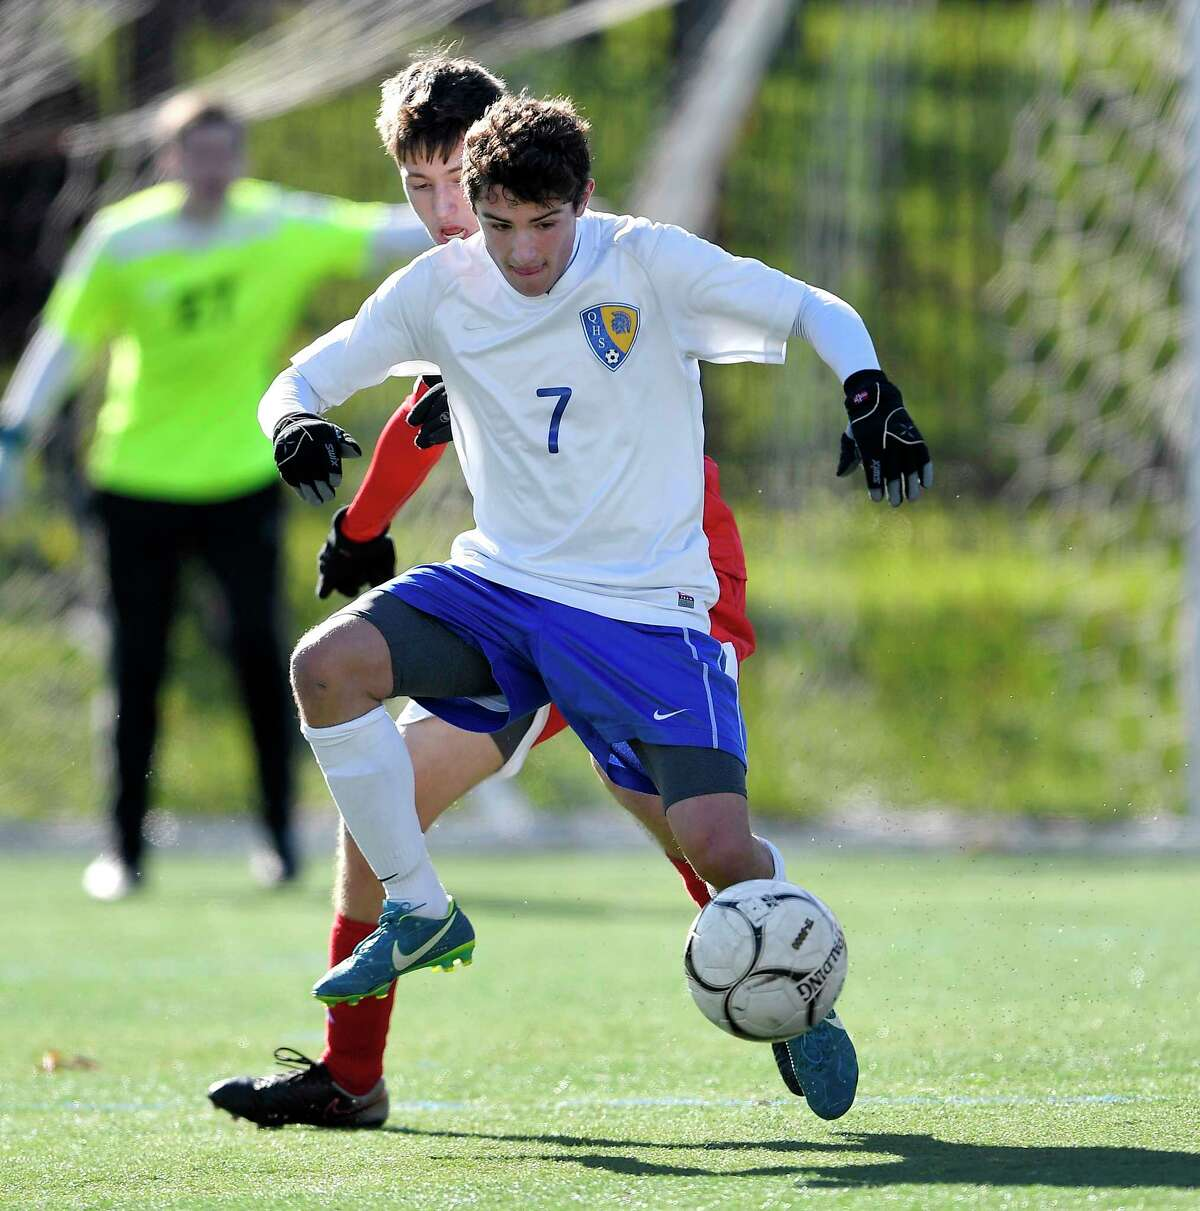 Queensbury?'s Teddy Borgos controls the ball during a Class A semifinal at the NYSPHSAA Boys Soccer Championships in Newburgh, N.Y., Saturday, Nov. 10, 2018. Queensbury's season ended with a 2-1 loss to Somers-I. (Adrian Kraus / Special to the Times Union)